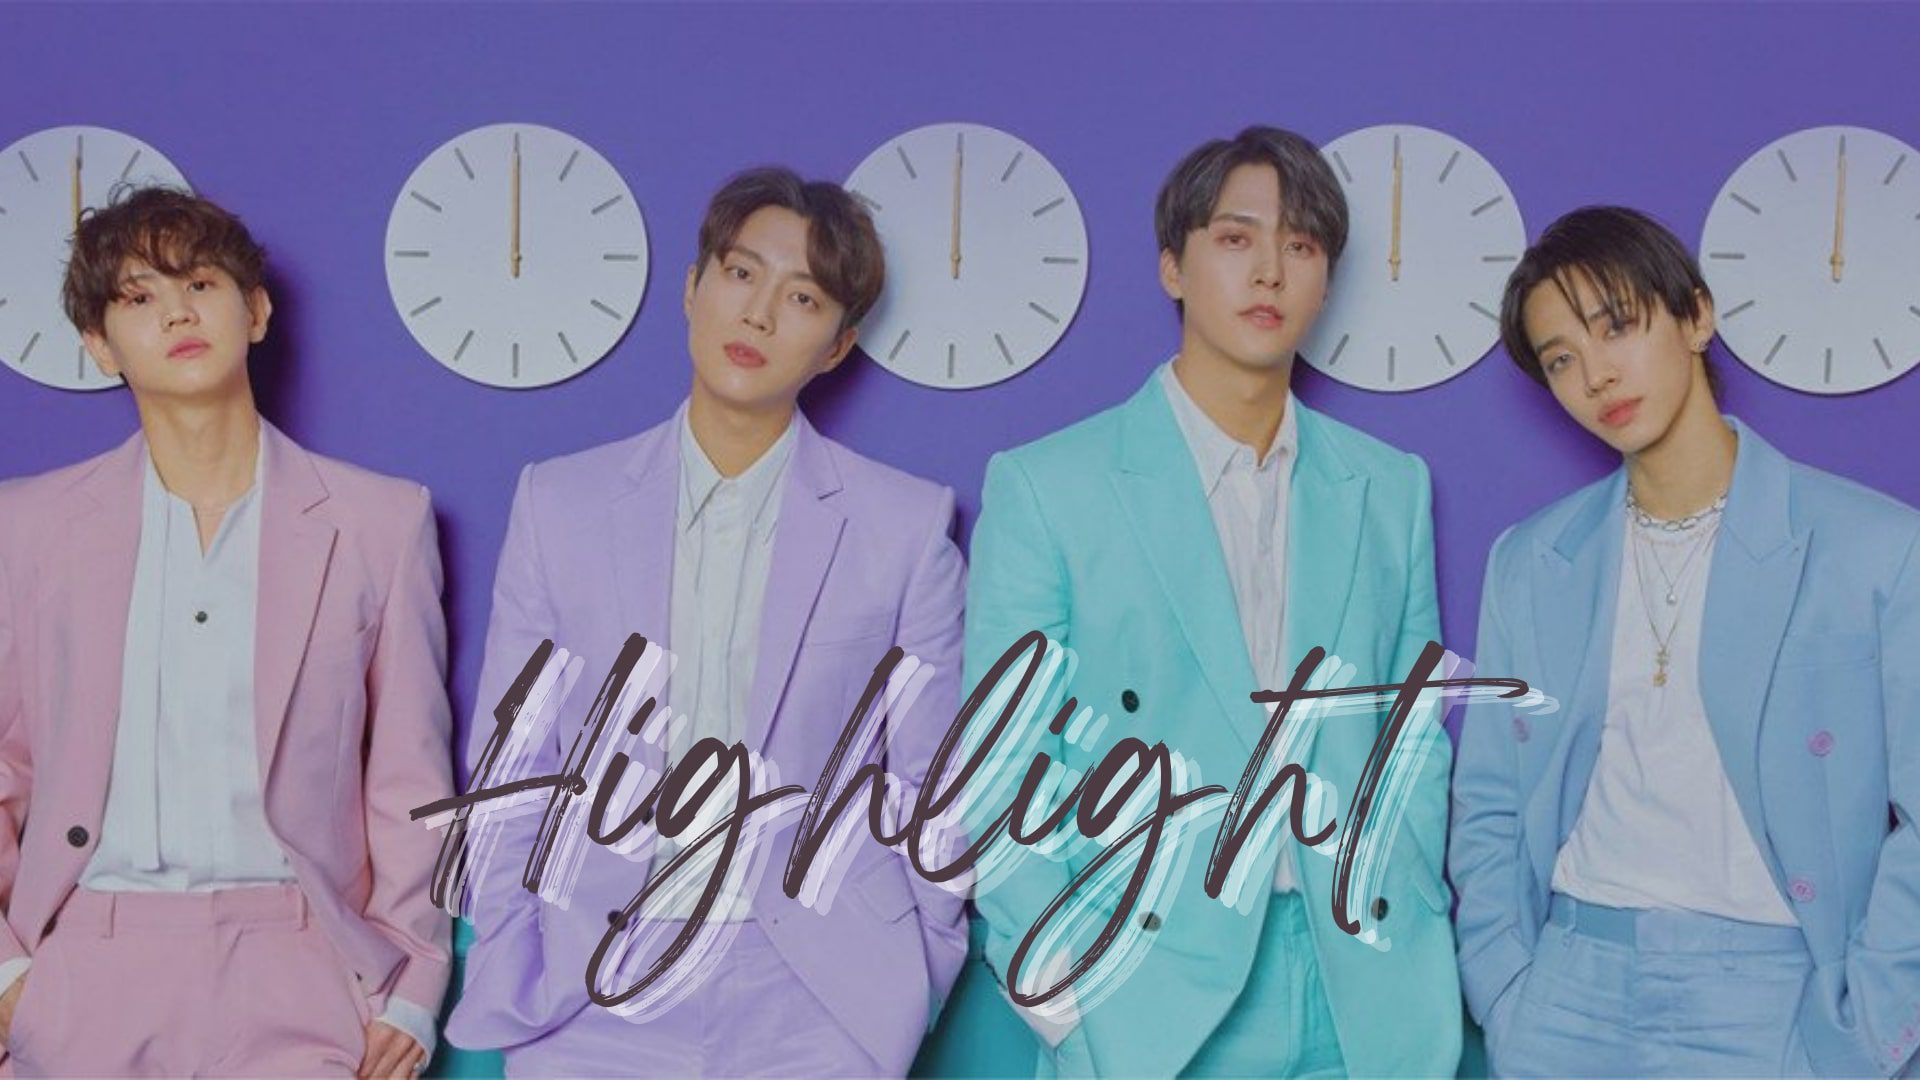 Highlight: Who Is The Kpop Boy Band?